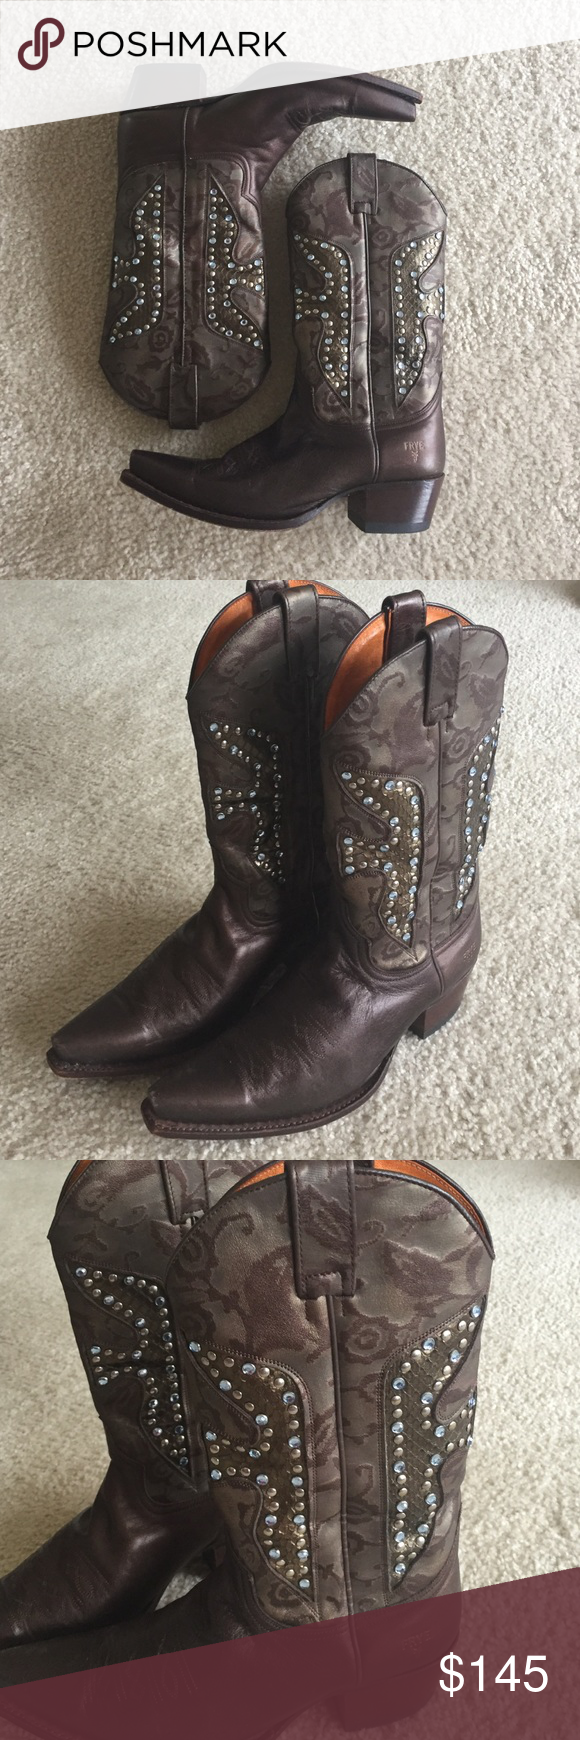 Frye gorgeous cowboy boots Authentic Frye designer cowboy boots; almost brand new; worn once and realized they are too big 😞 gorgeous bronze/ brown color with embossed damask design with integrated snake embossing highlighted with stones!  These are the most highly designed Frye boots I've ever seen but are still understated!  Supple leather that Frye is known for; in perfect condition!! Frye Shoes